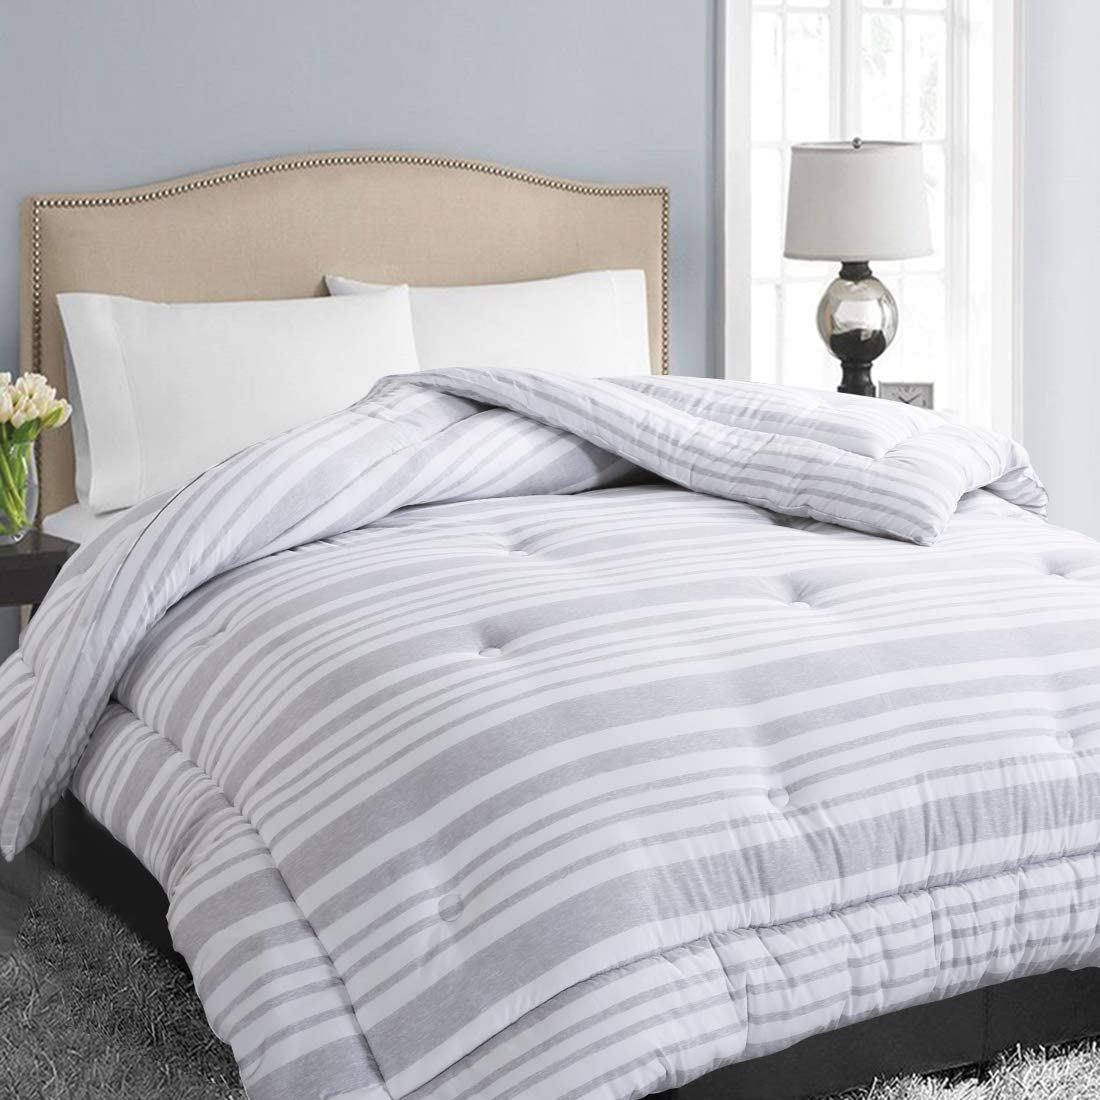 EASELAND All Season Queen Size Soft Quilted Down Alternative Comforter Hotel Collection Reversible Duvet Insert with Corner Tabs,Winter Warm Fluffy Hypoallergenic,Grey White Stripe